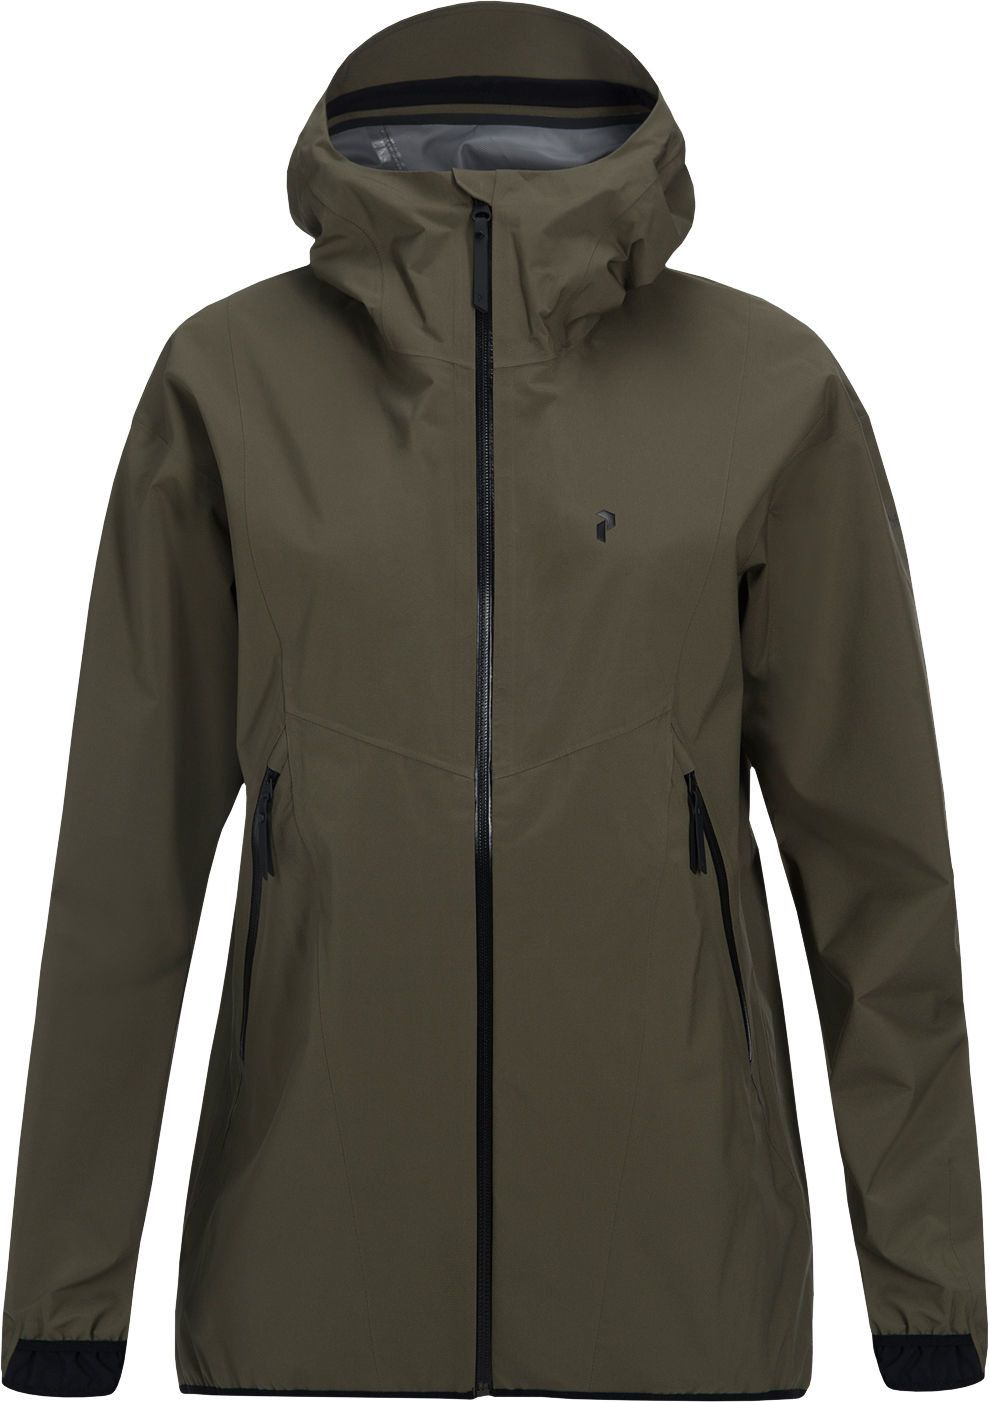 Peak Performance Prime Jacket Dame Terrain Green Jackets